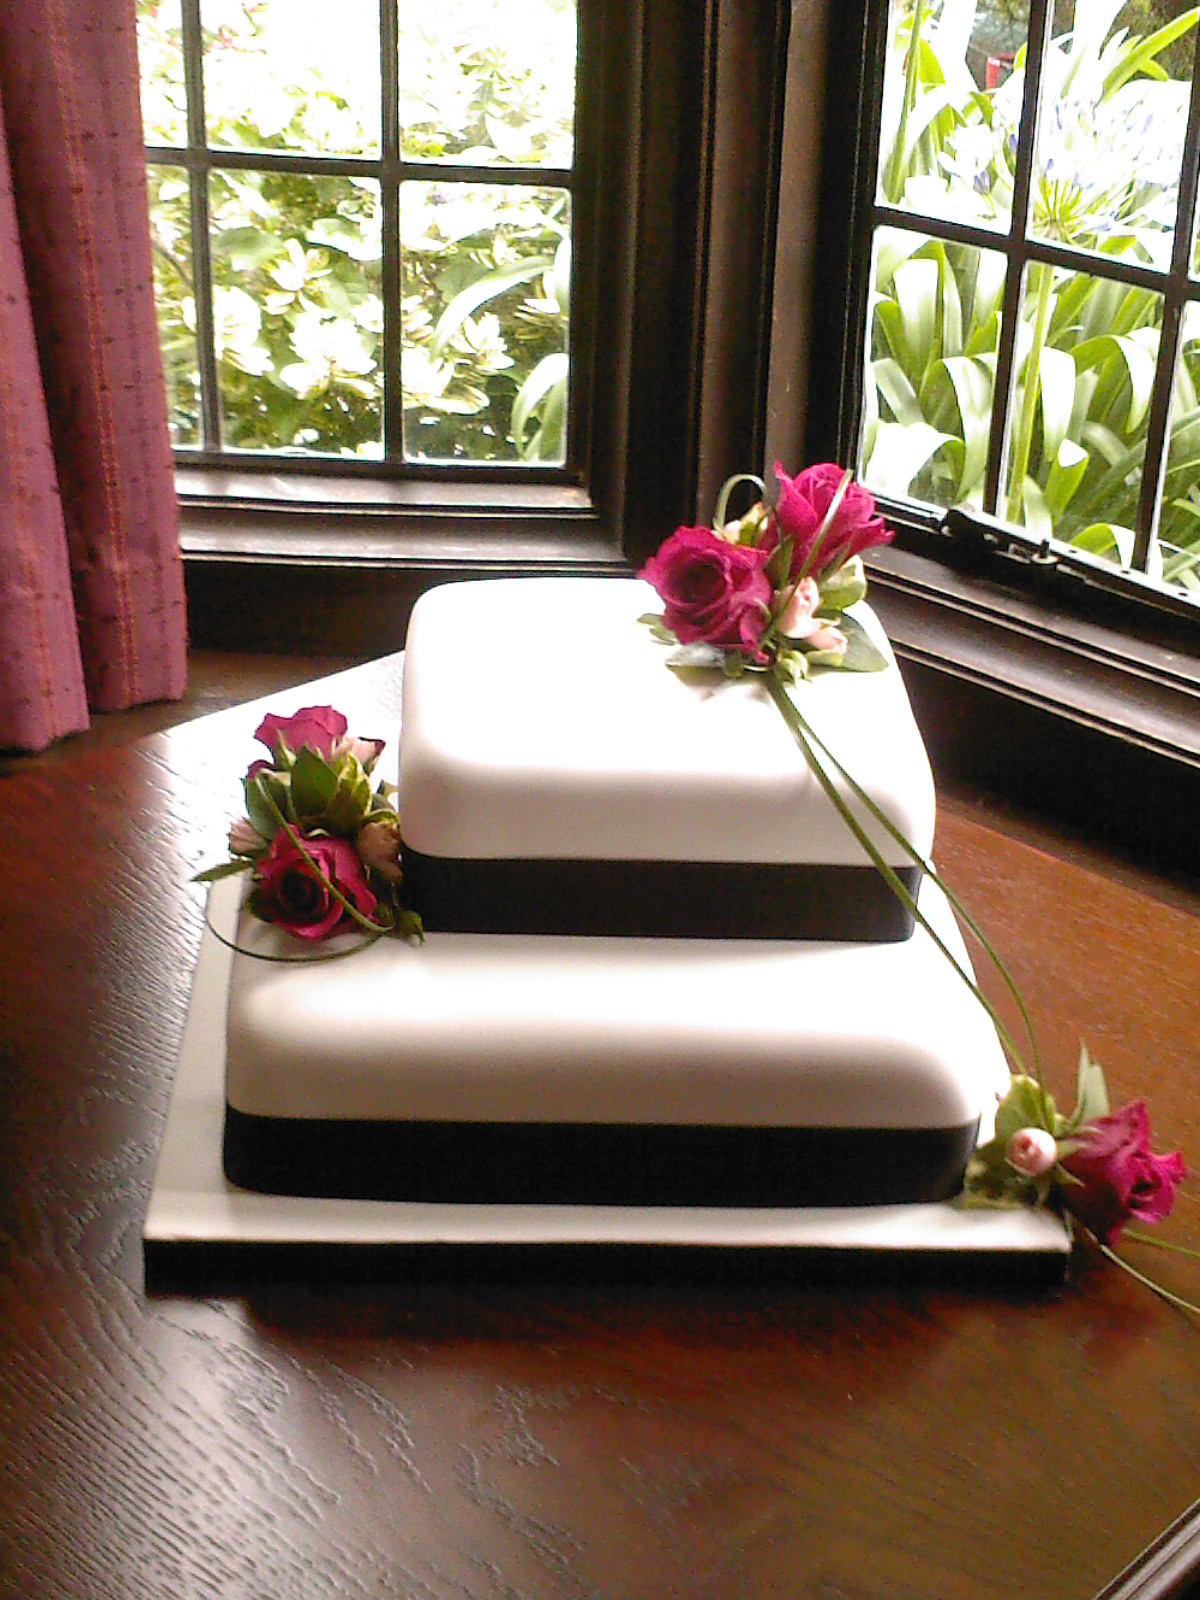 2 Tier Square Wedding Cakes  2 Tier Square Wedding Cake With Fresh Flowers Susie s Cakes